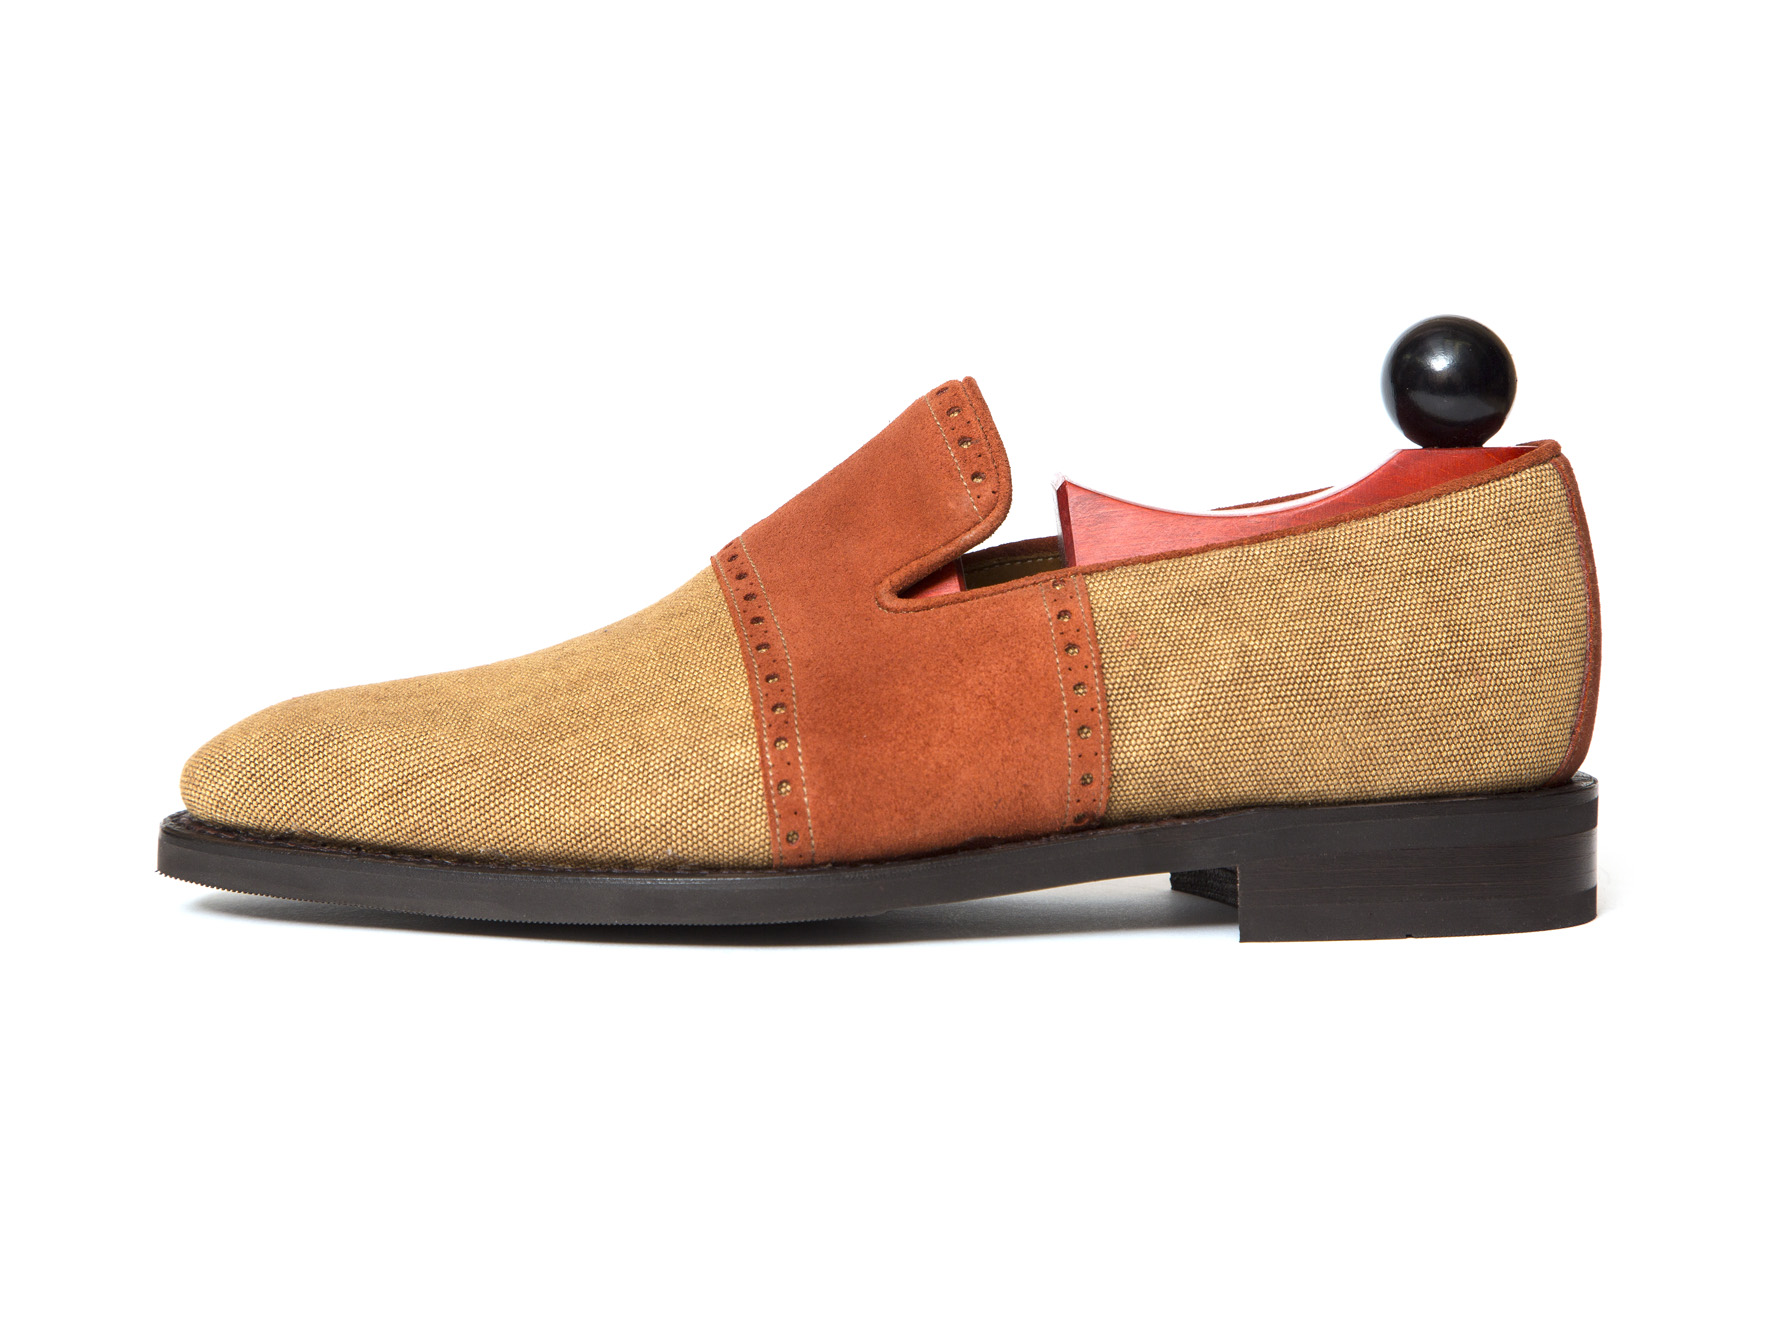 j-fitzpatrick-footwear-samples-april-21-20162999